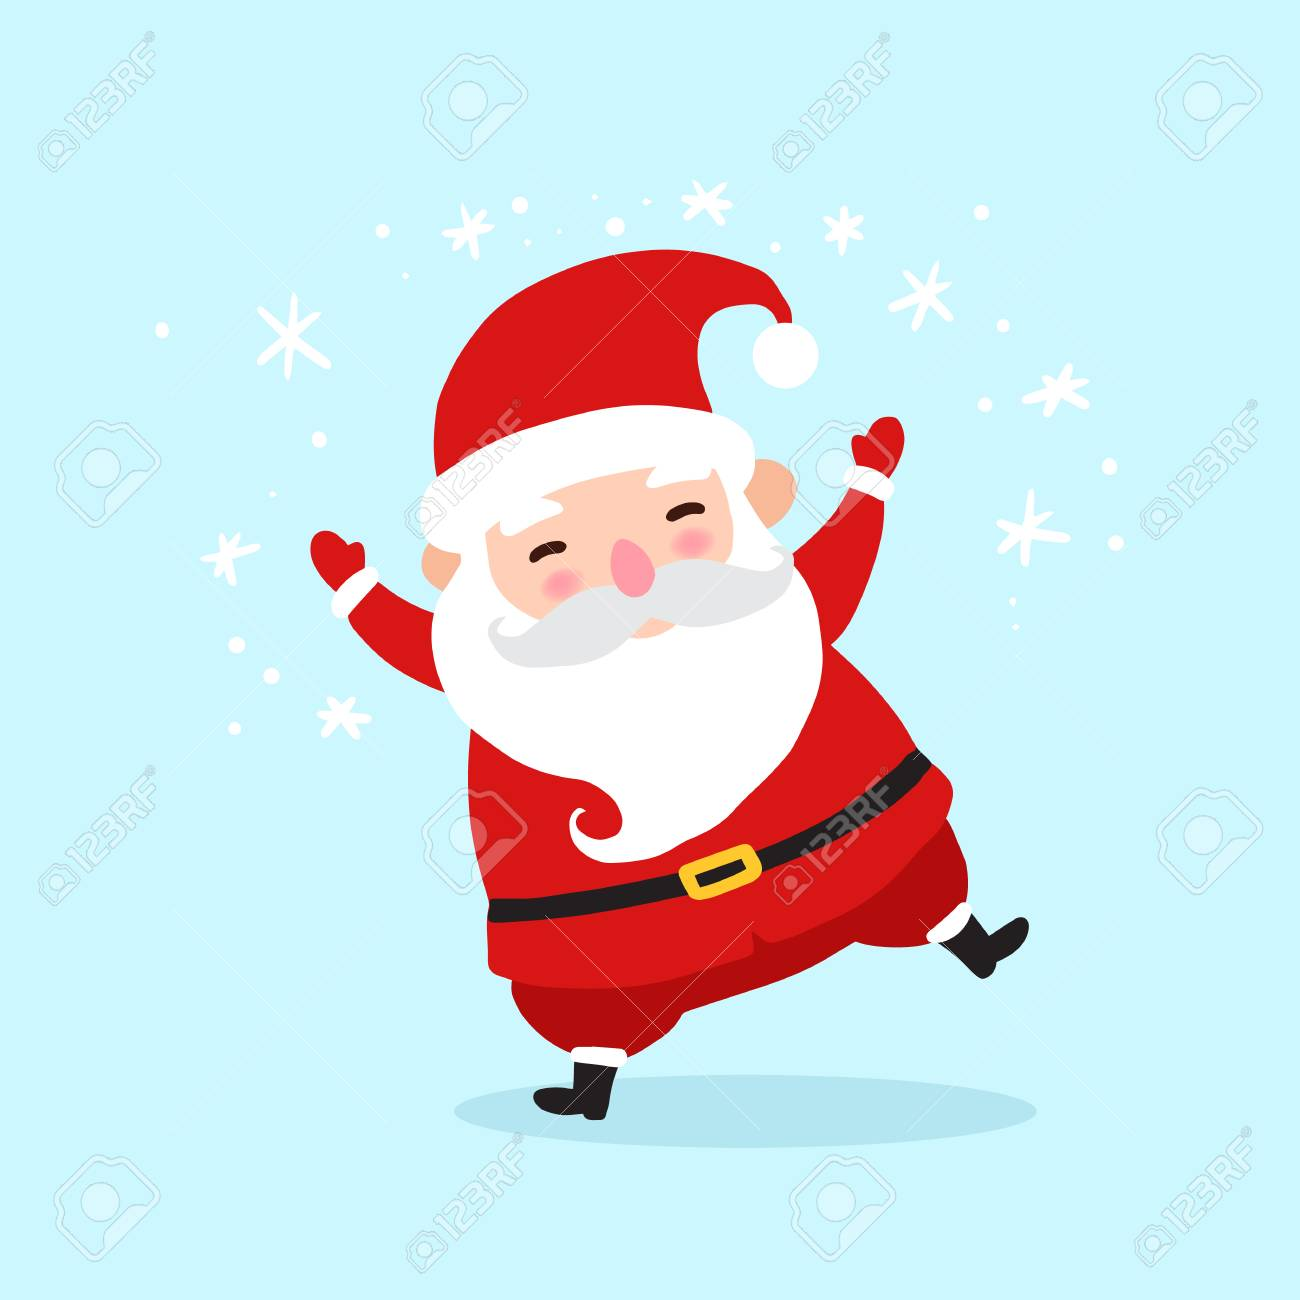 Dancing Santa Claus Cartoon Character Icon Isolated On Blue Background Royalty Free Cliparts Vectors And Stock Illustration Image 67181339